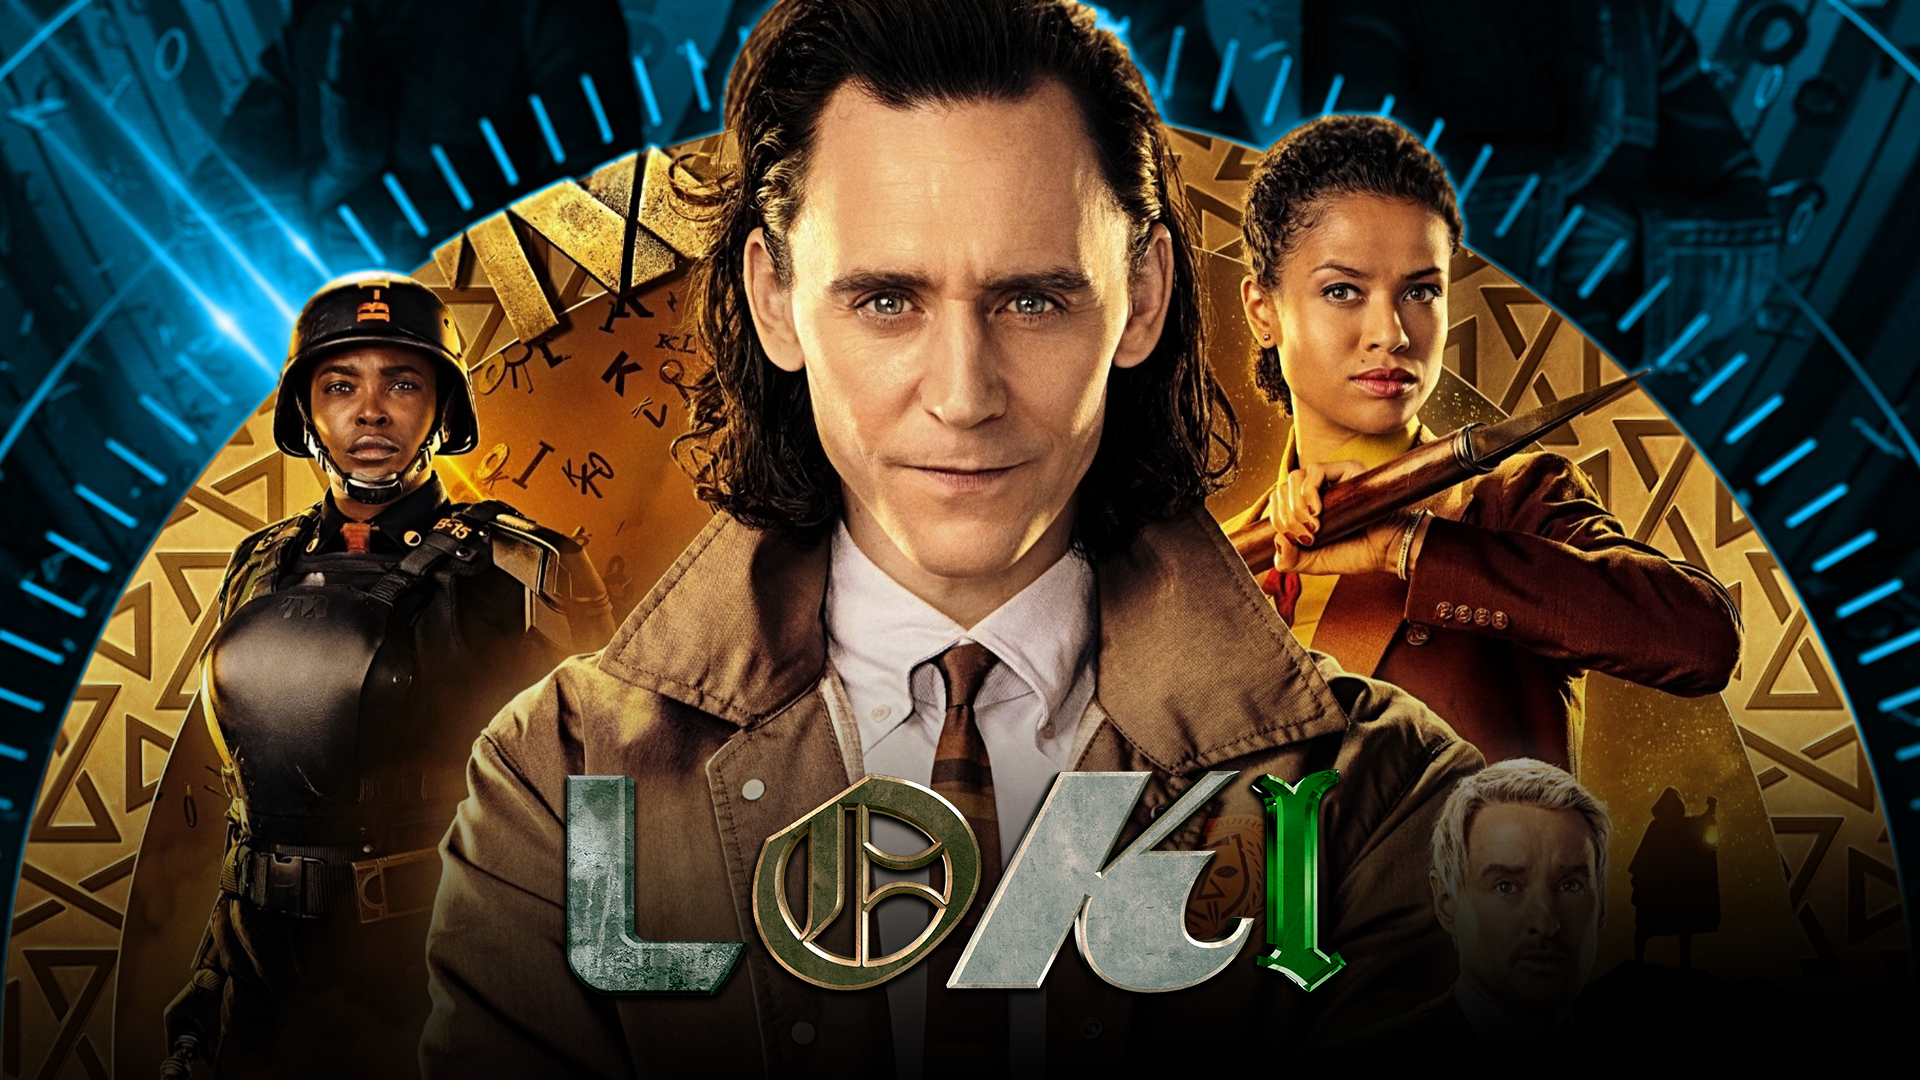 Loki has Marvel's best characters and it's not even close